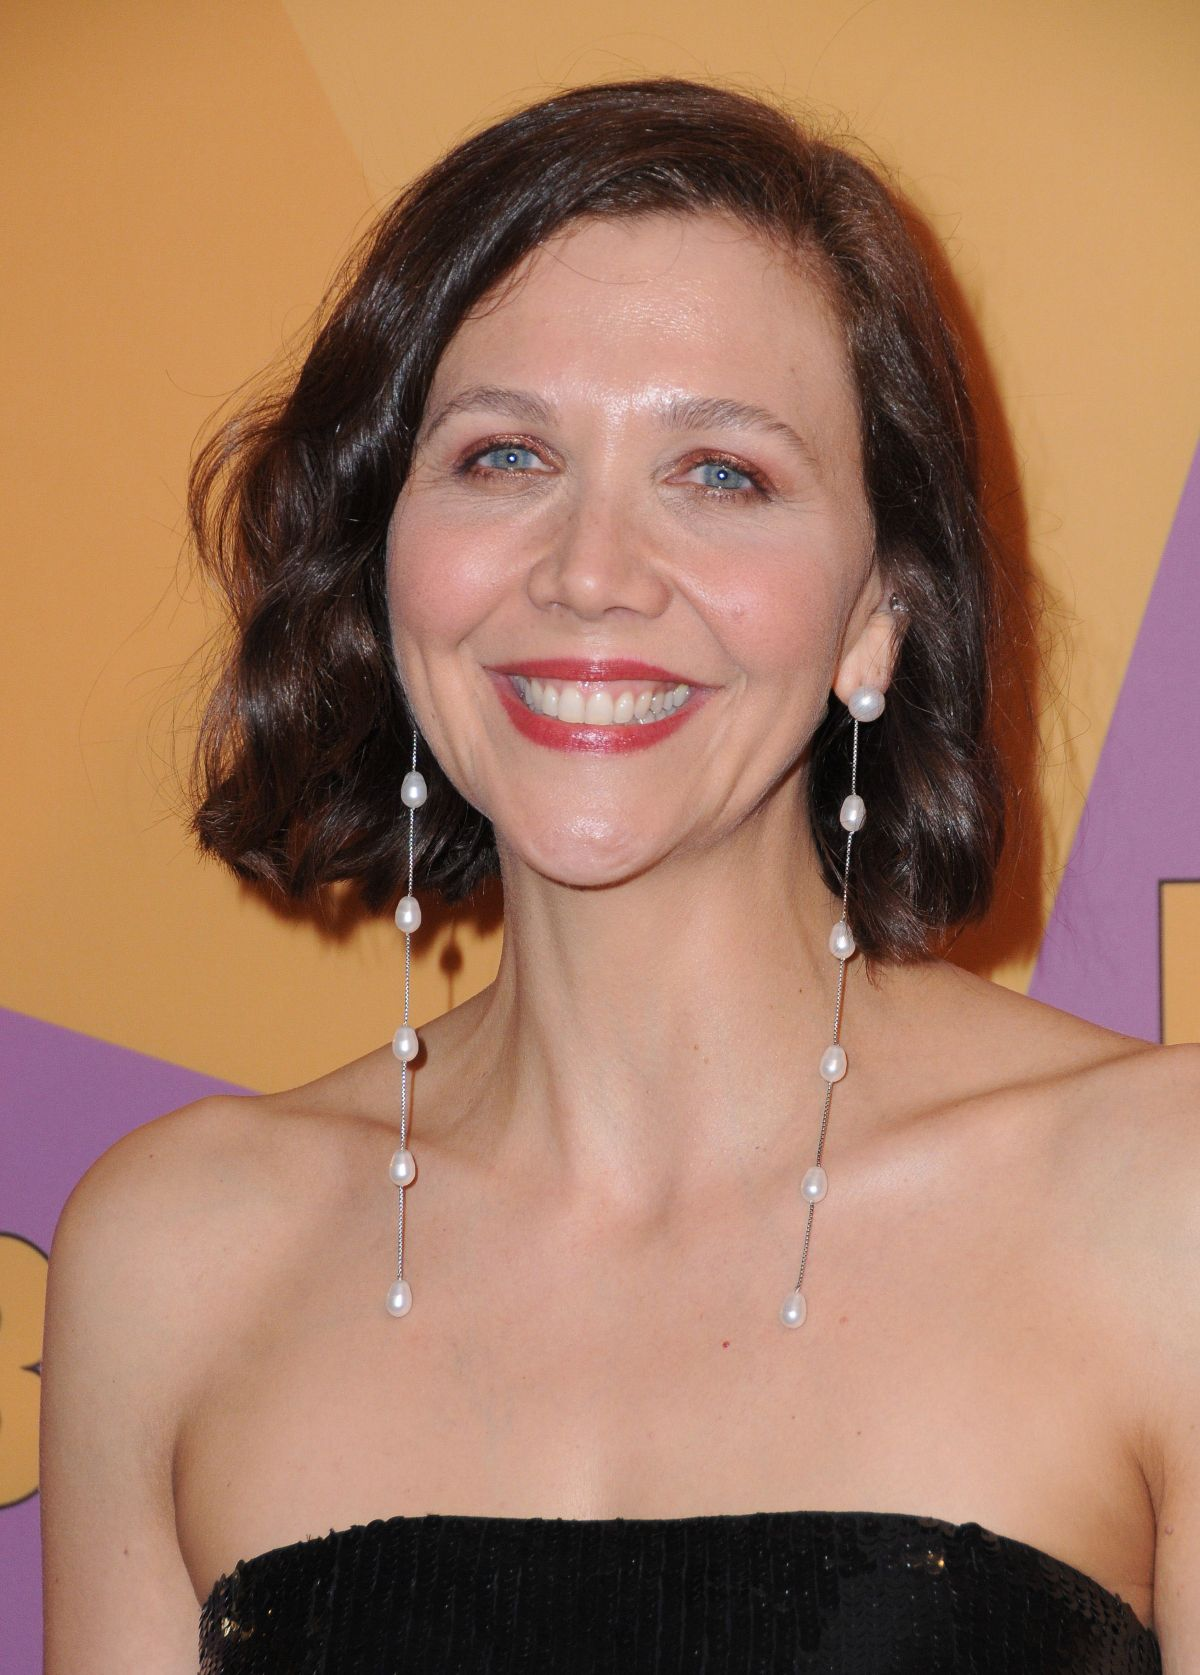 MAGGIE GYLLENHAAL at HBO's Golden Globe Awards After-party ... Maggie Gyllenhaal